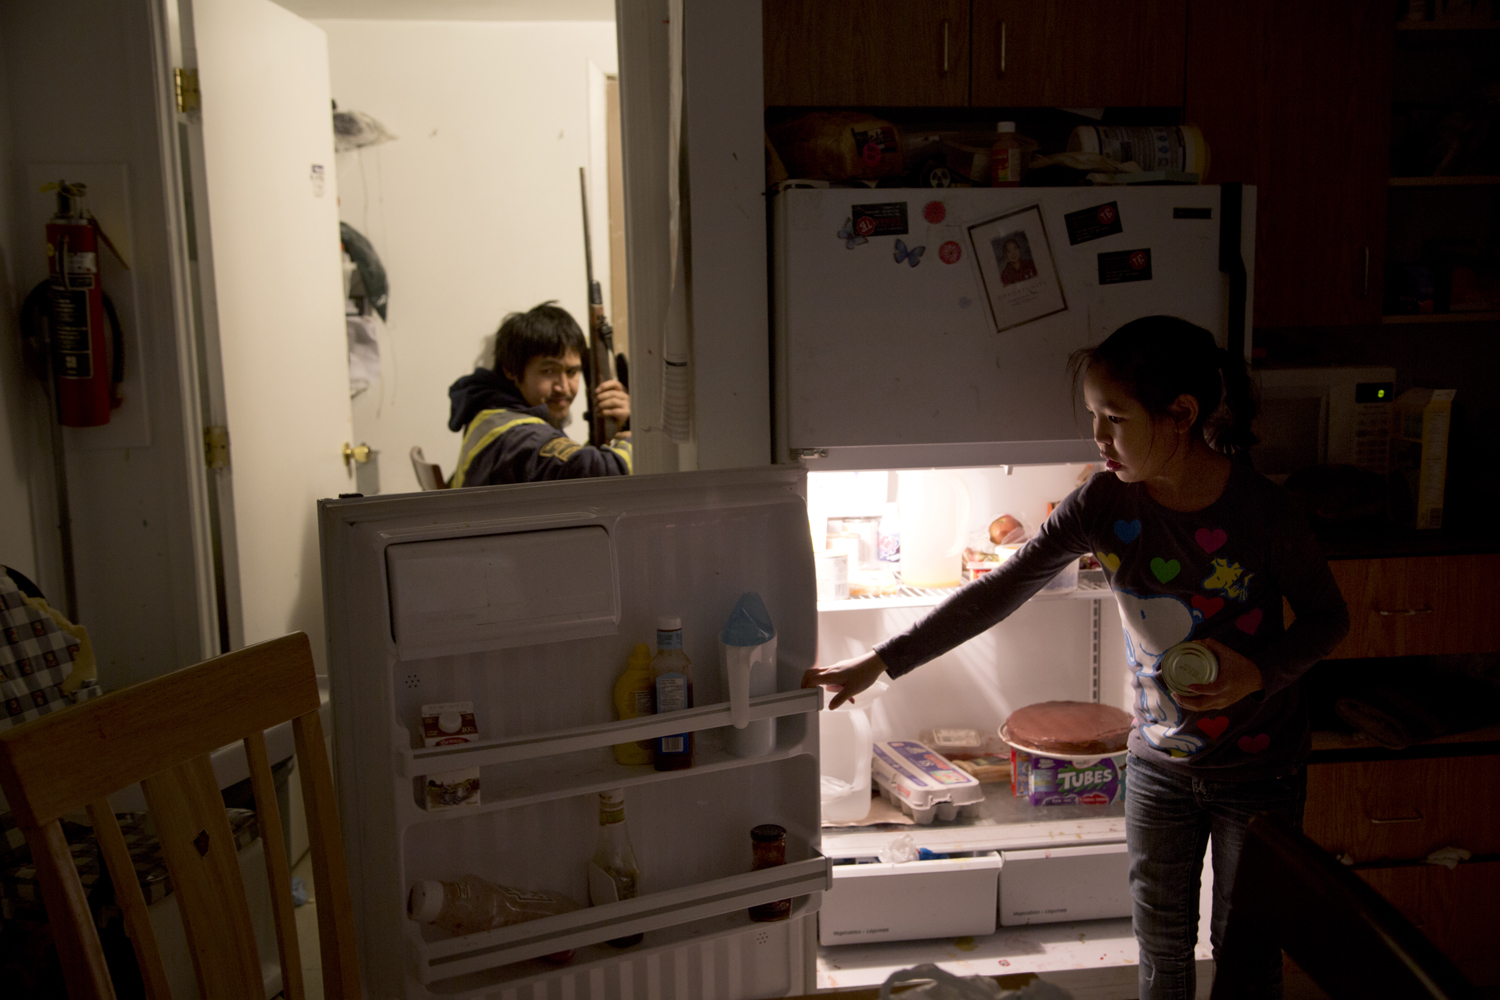 Pangnirtung, Canada, Nov. 16, 2013. Annie Ishlutak (right), 7, reaches into a near empty refrigerator as her father Levi (left), 35, cleans his rifle upon returning from a hunting trip.